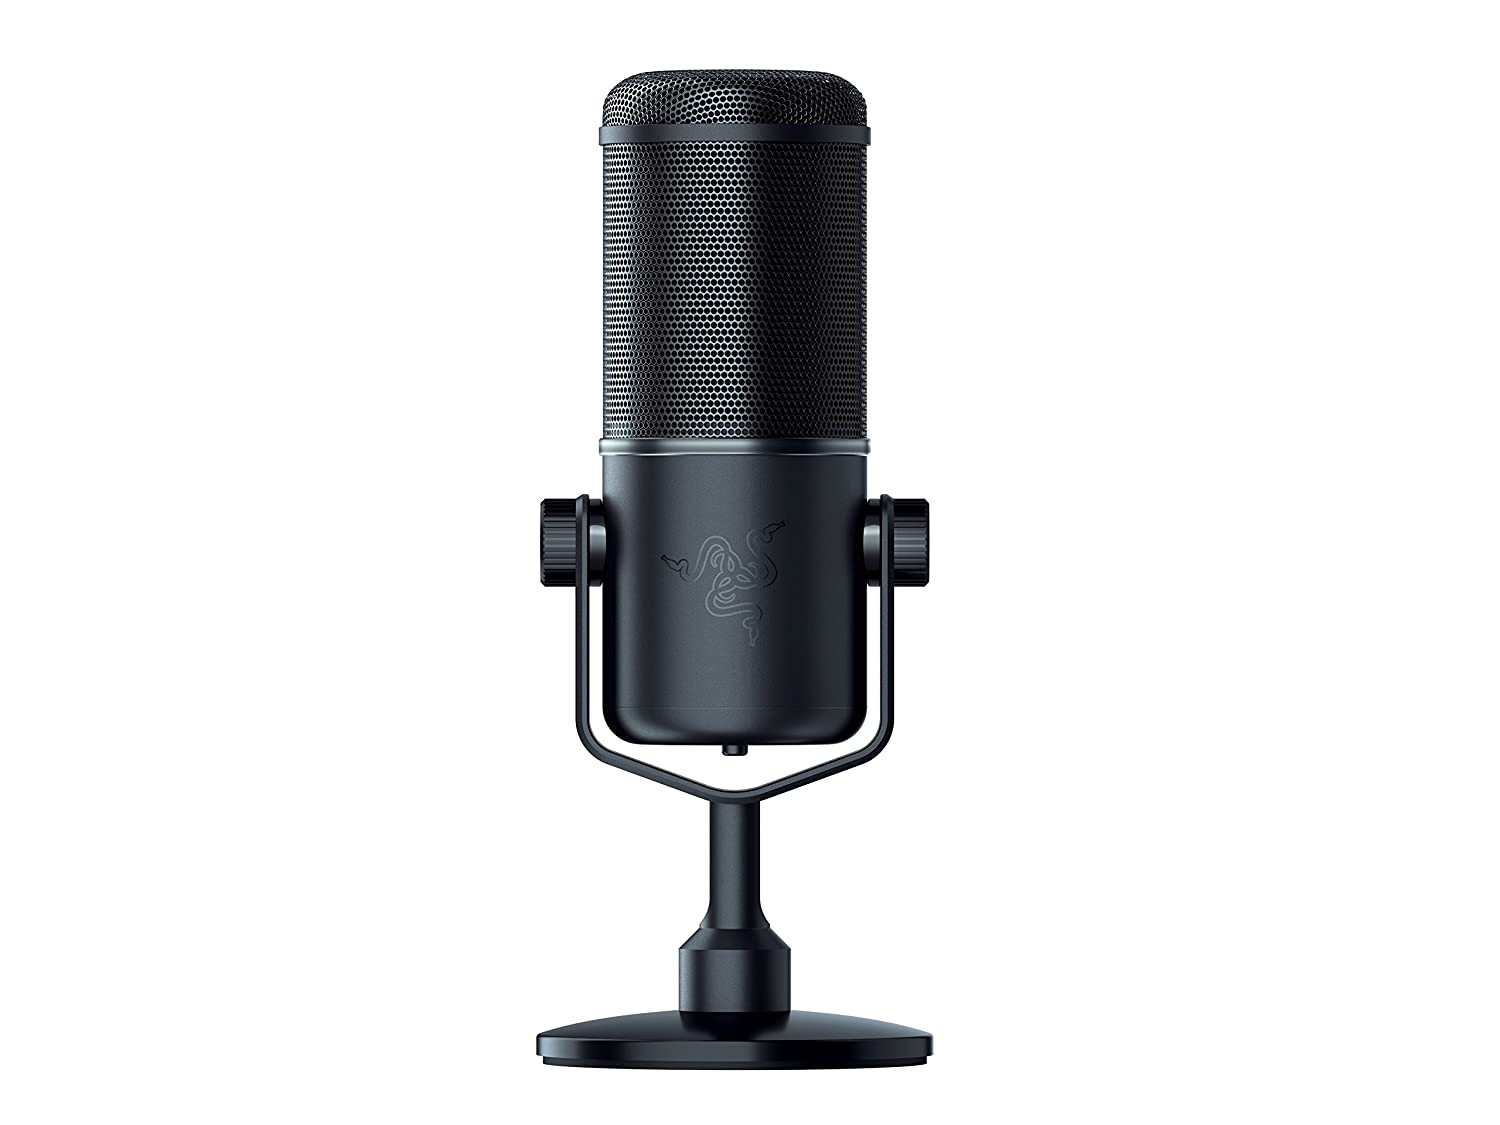 Razer Seiren Black Friday Deals 2019